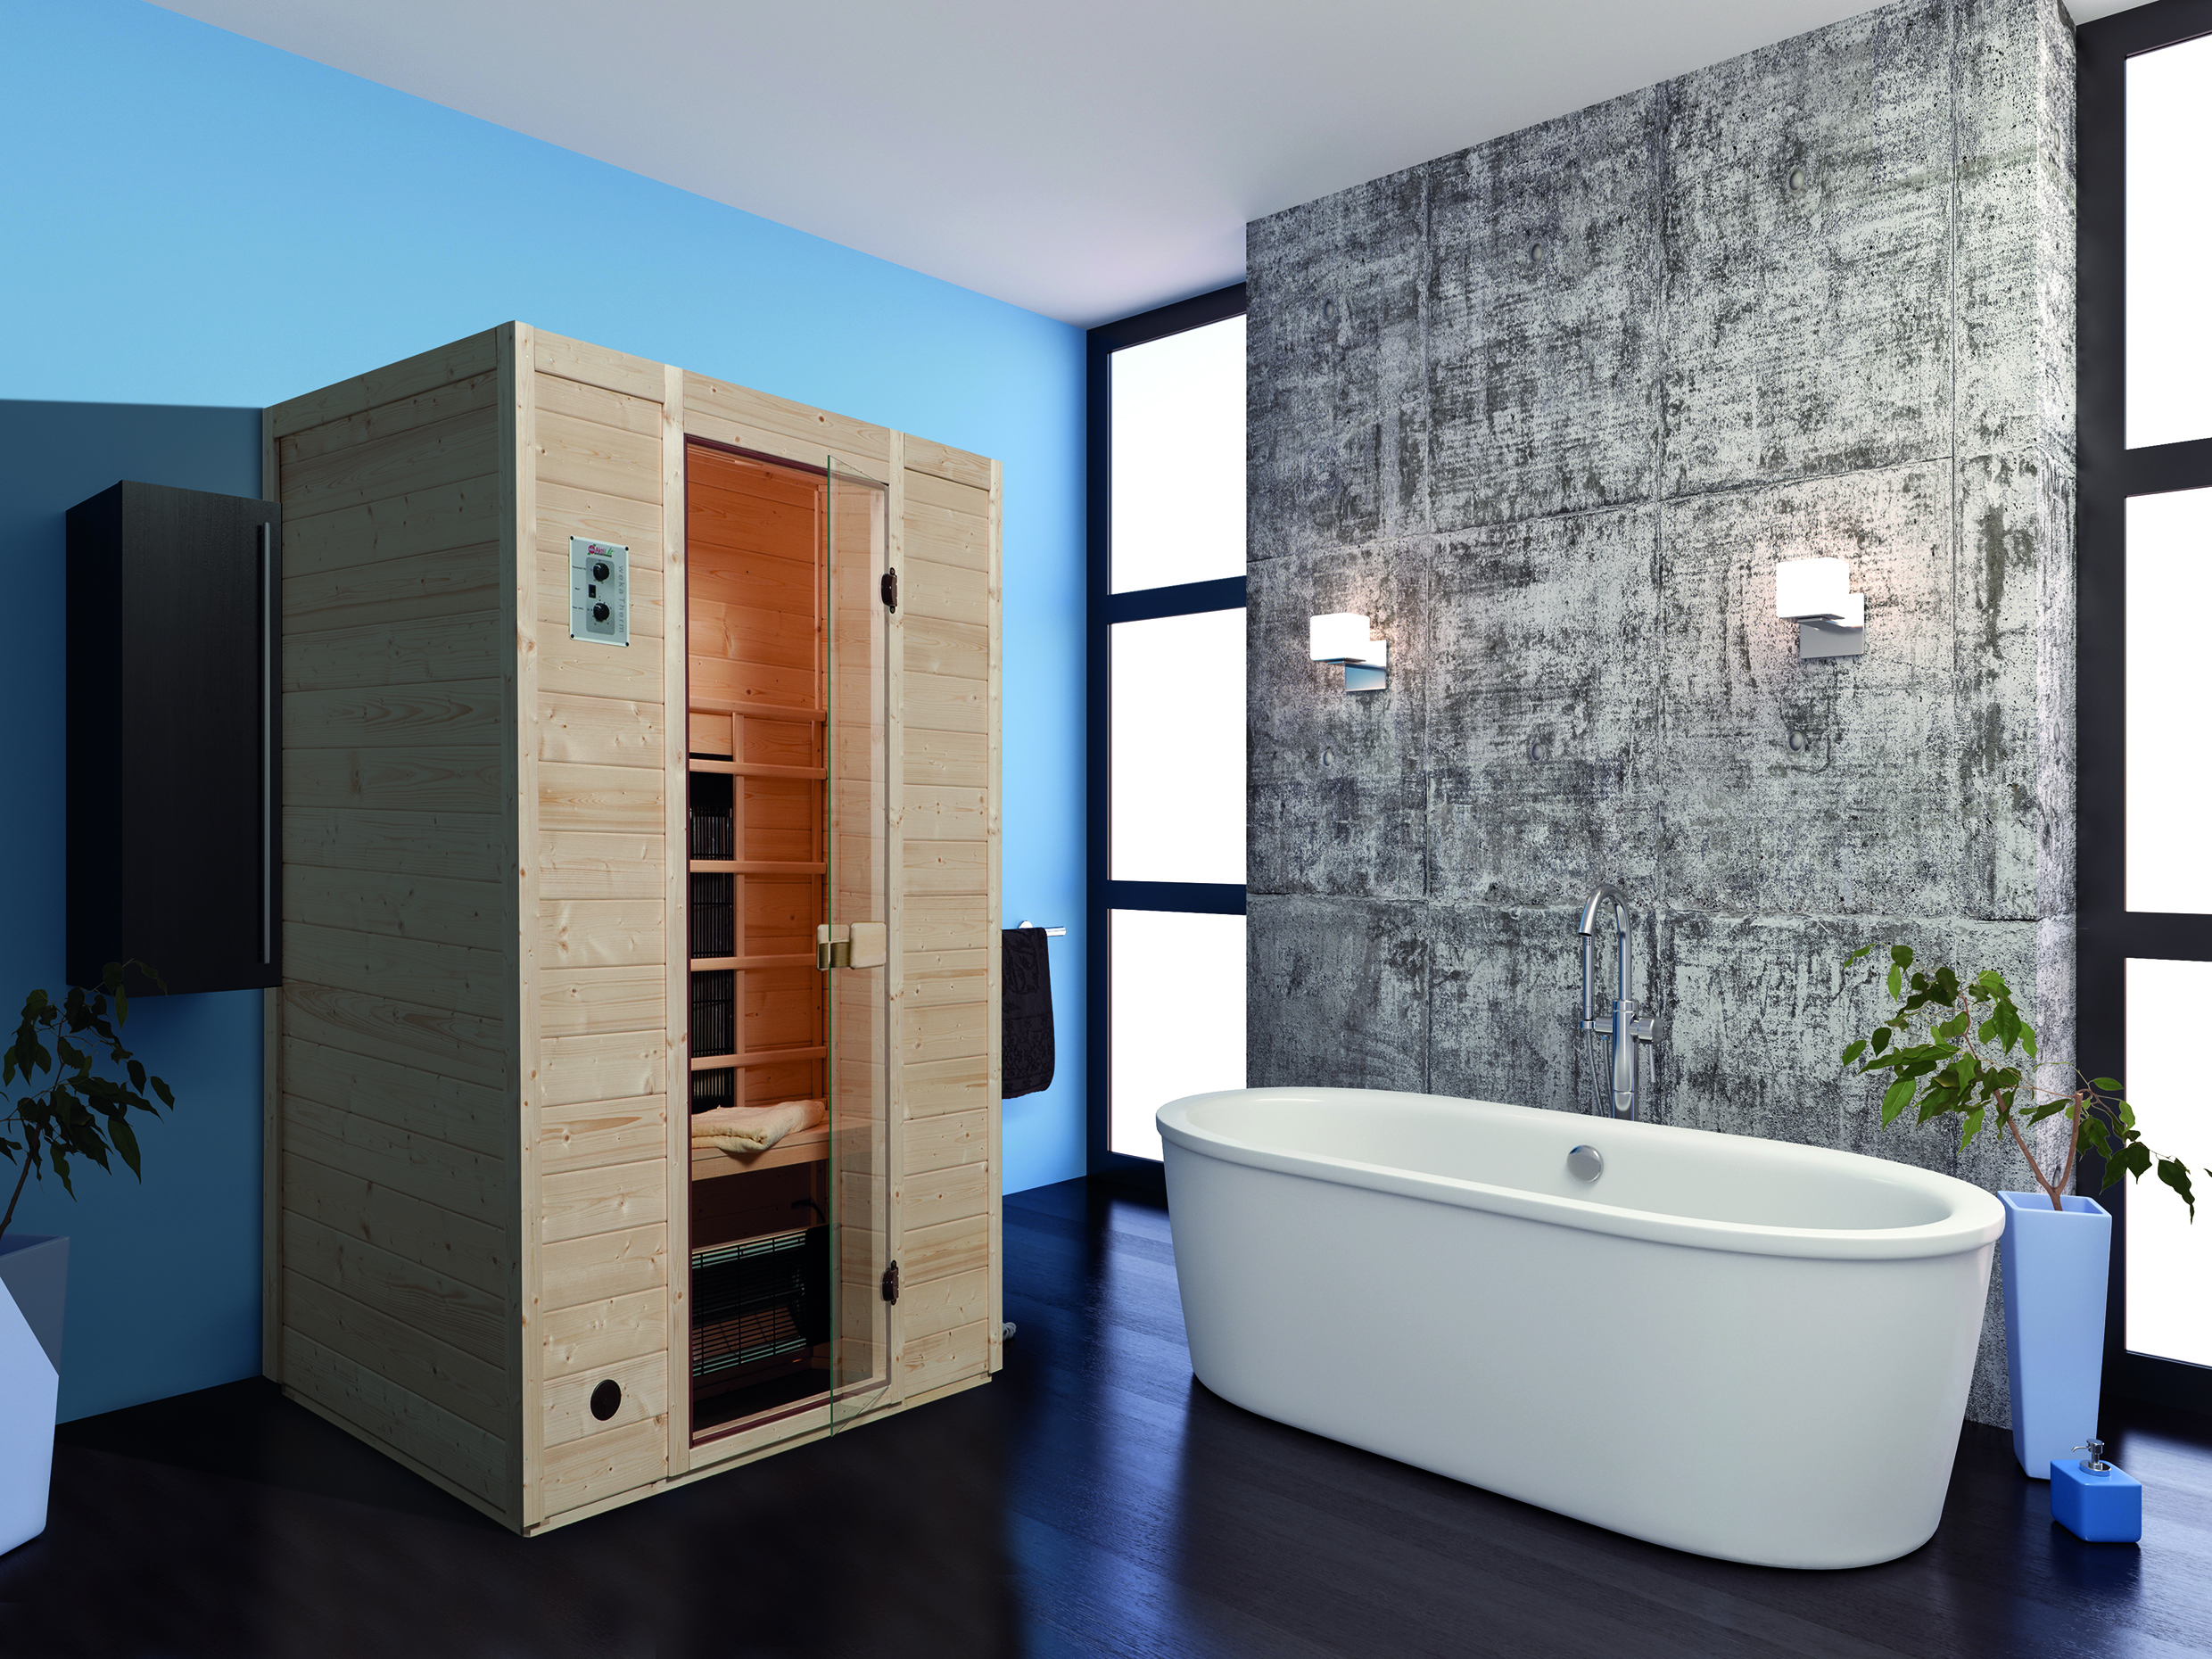 infrarotkabine vaala 2 holzwurm obersayn. Black Bedroom Furniture Sets. Home Design Ideas